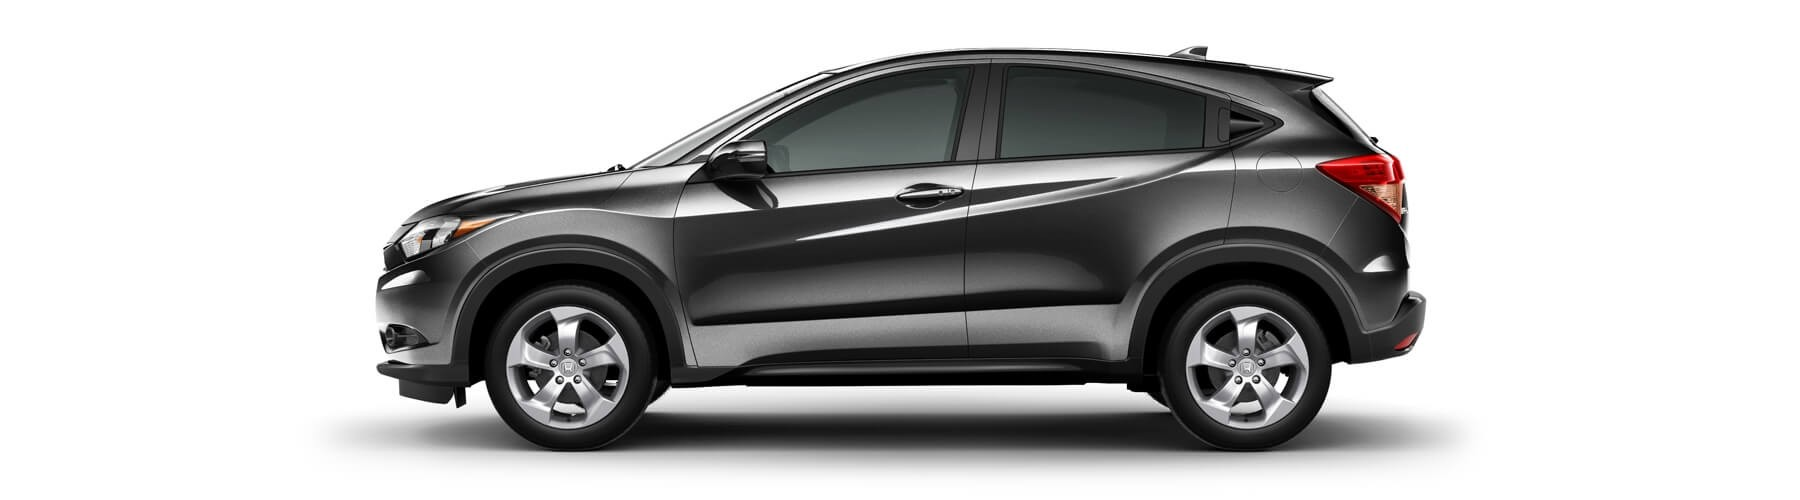 2018 Honda HR-V Side Profile